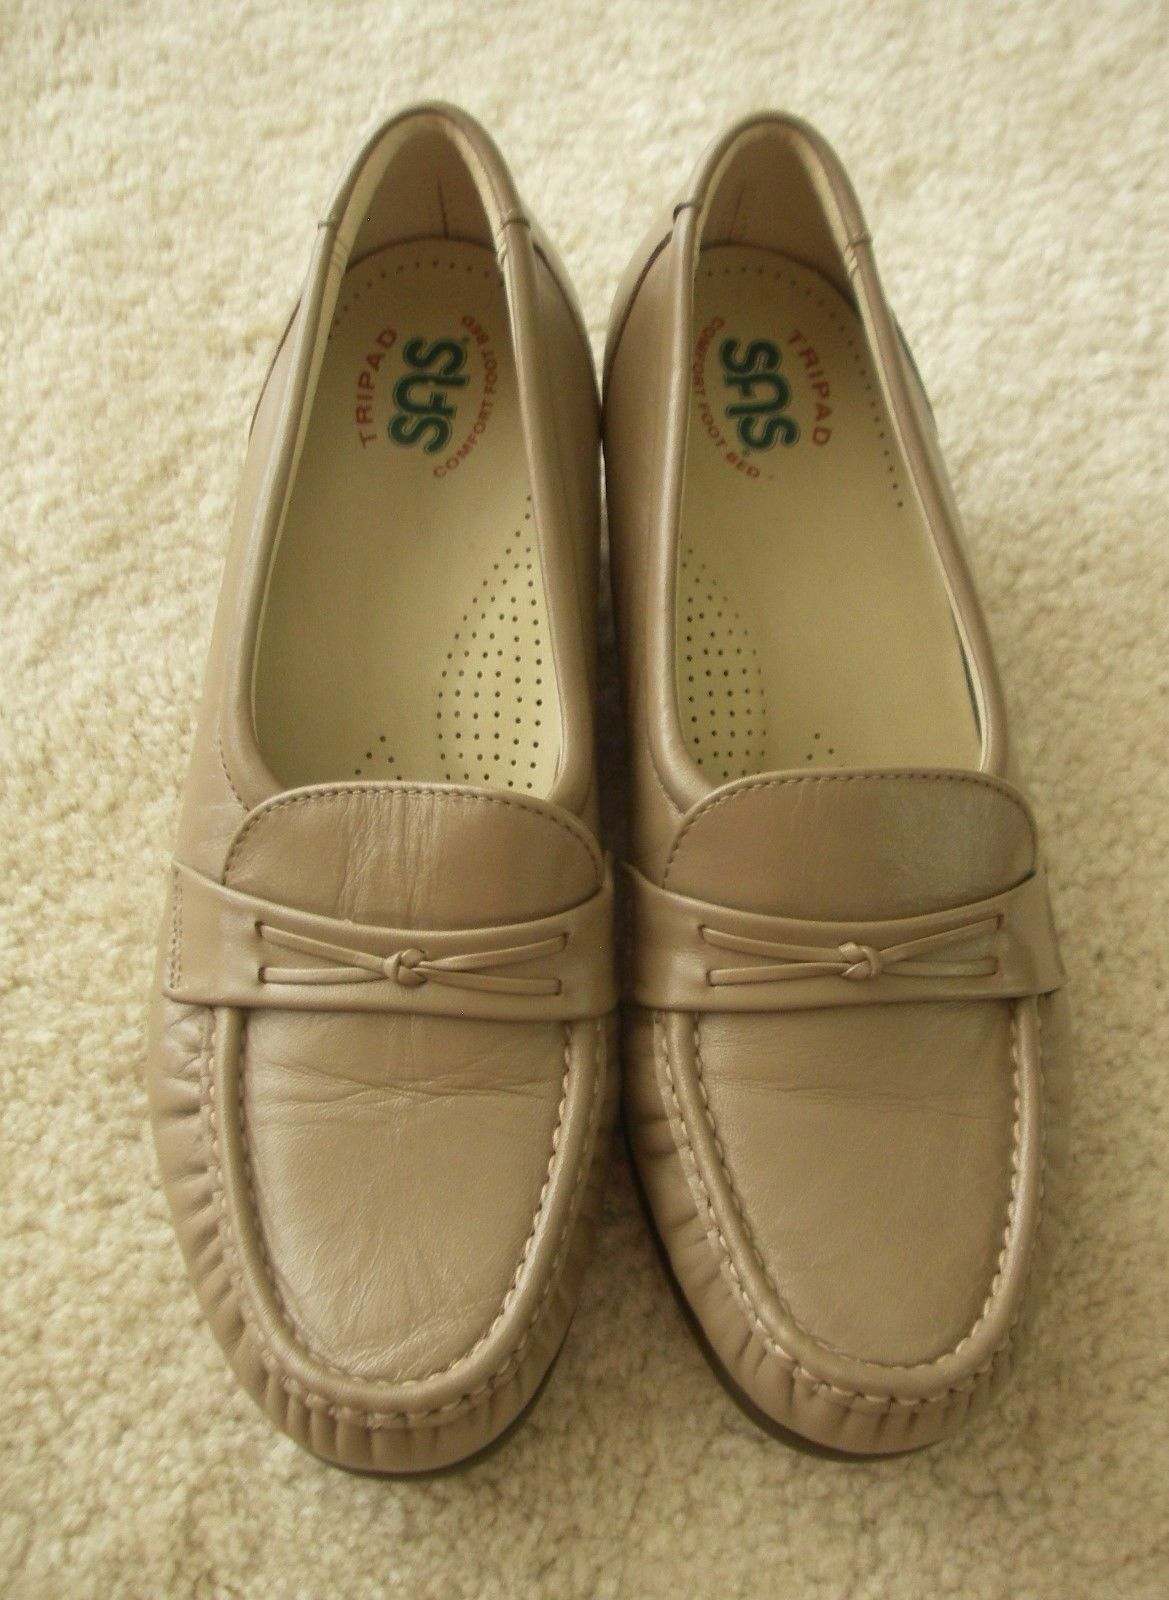 SAS EASIER WOMENS COMFORT SLIP ON SHOES LOAFERS TAUPE  Sz. 8 N